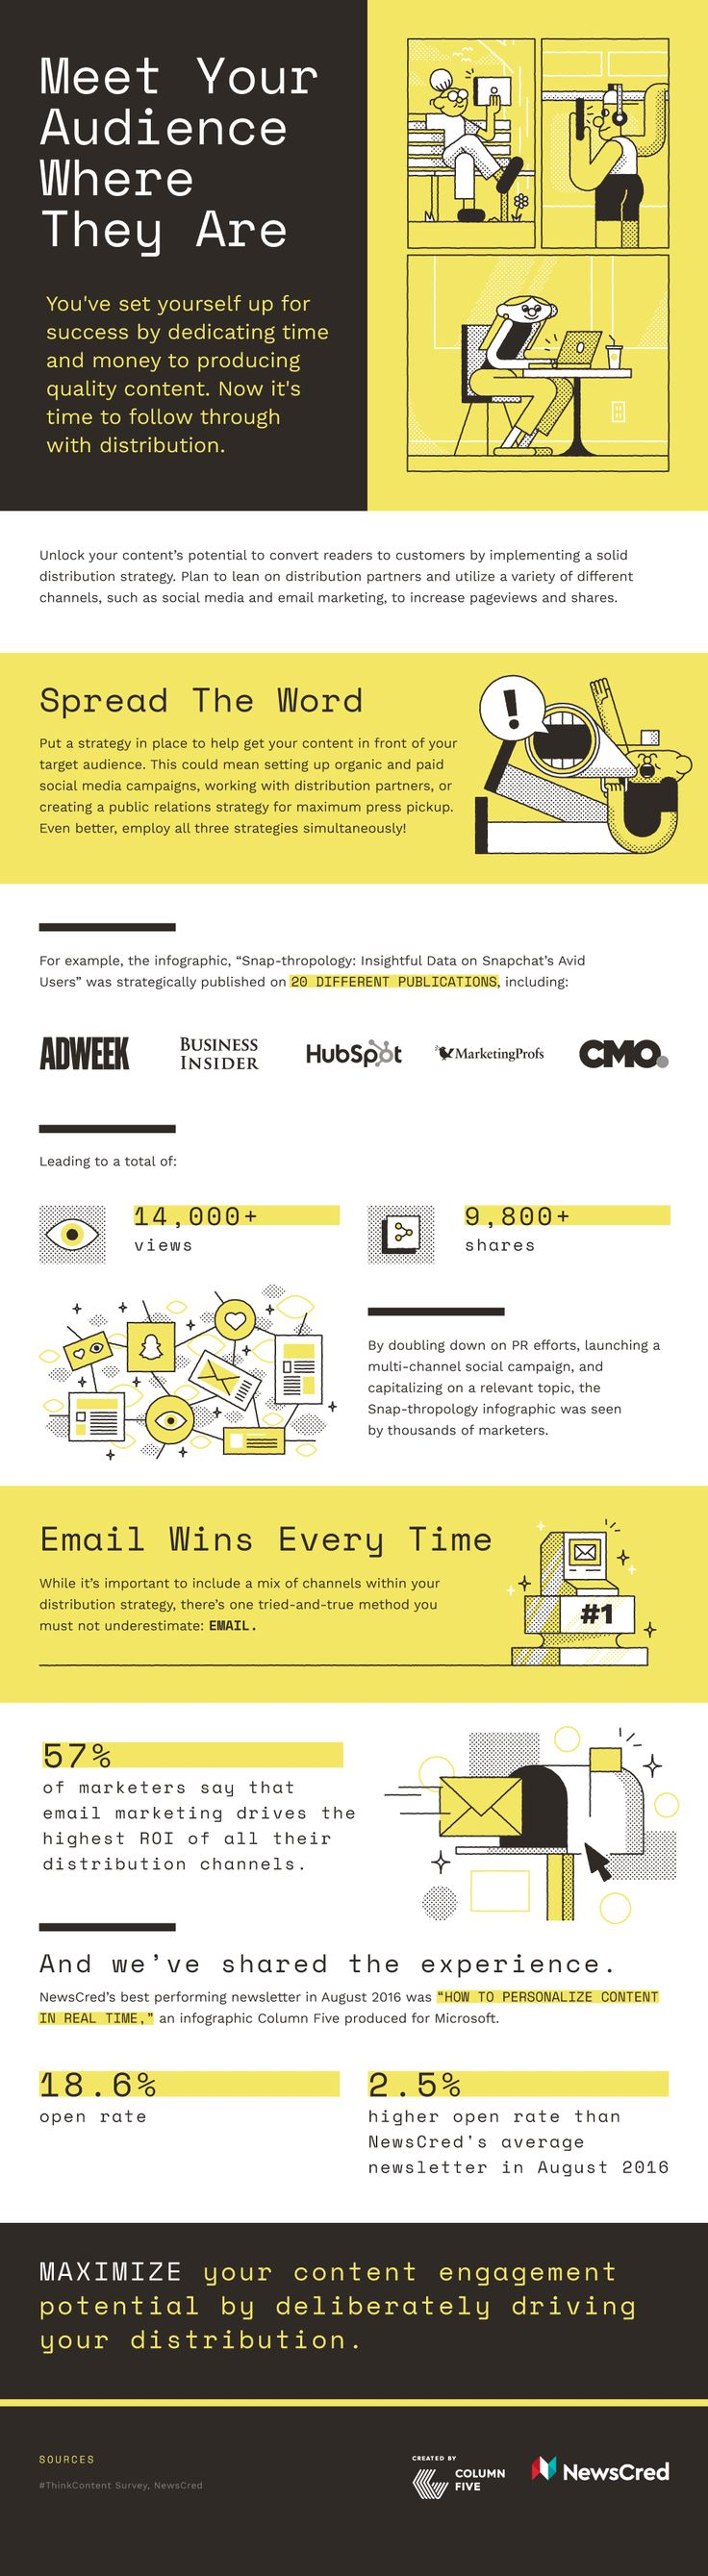 How to Maximize Content Marketing Distribution - #infographic